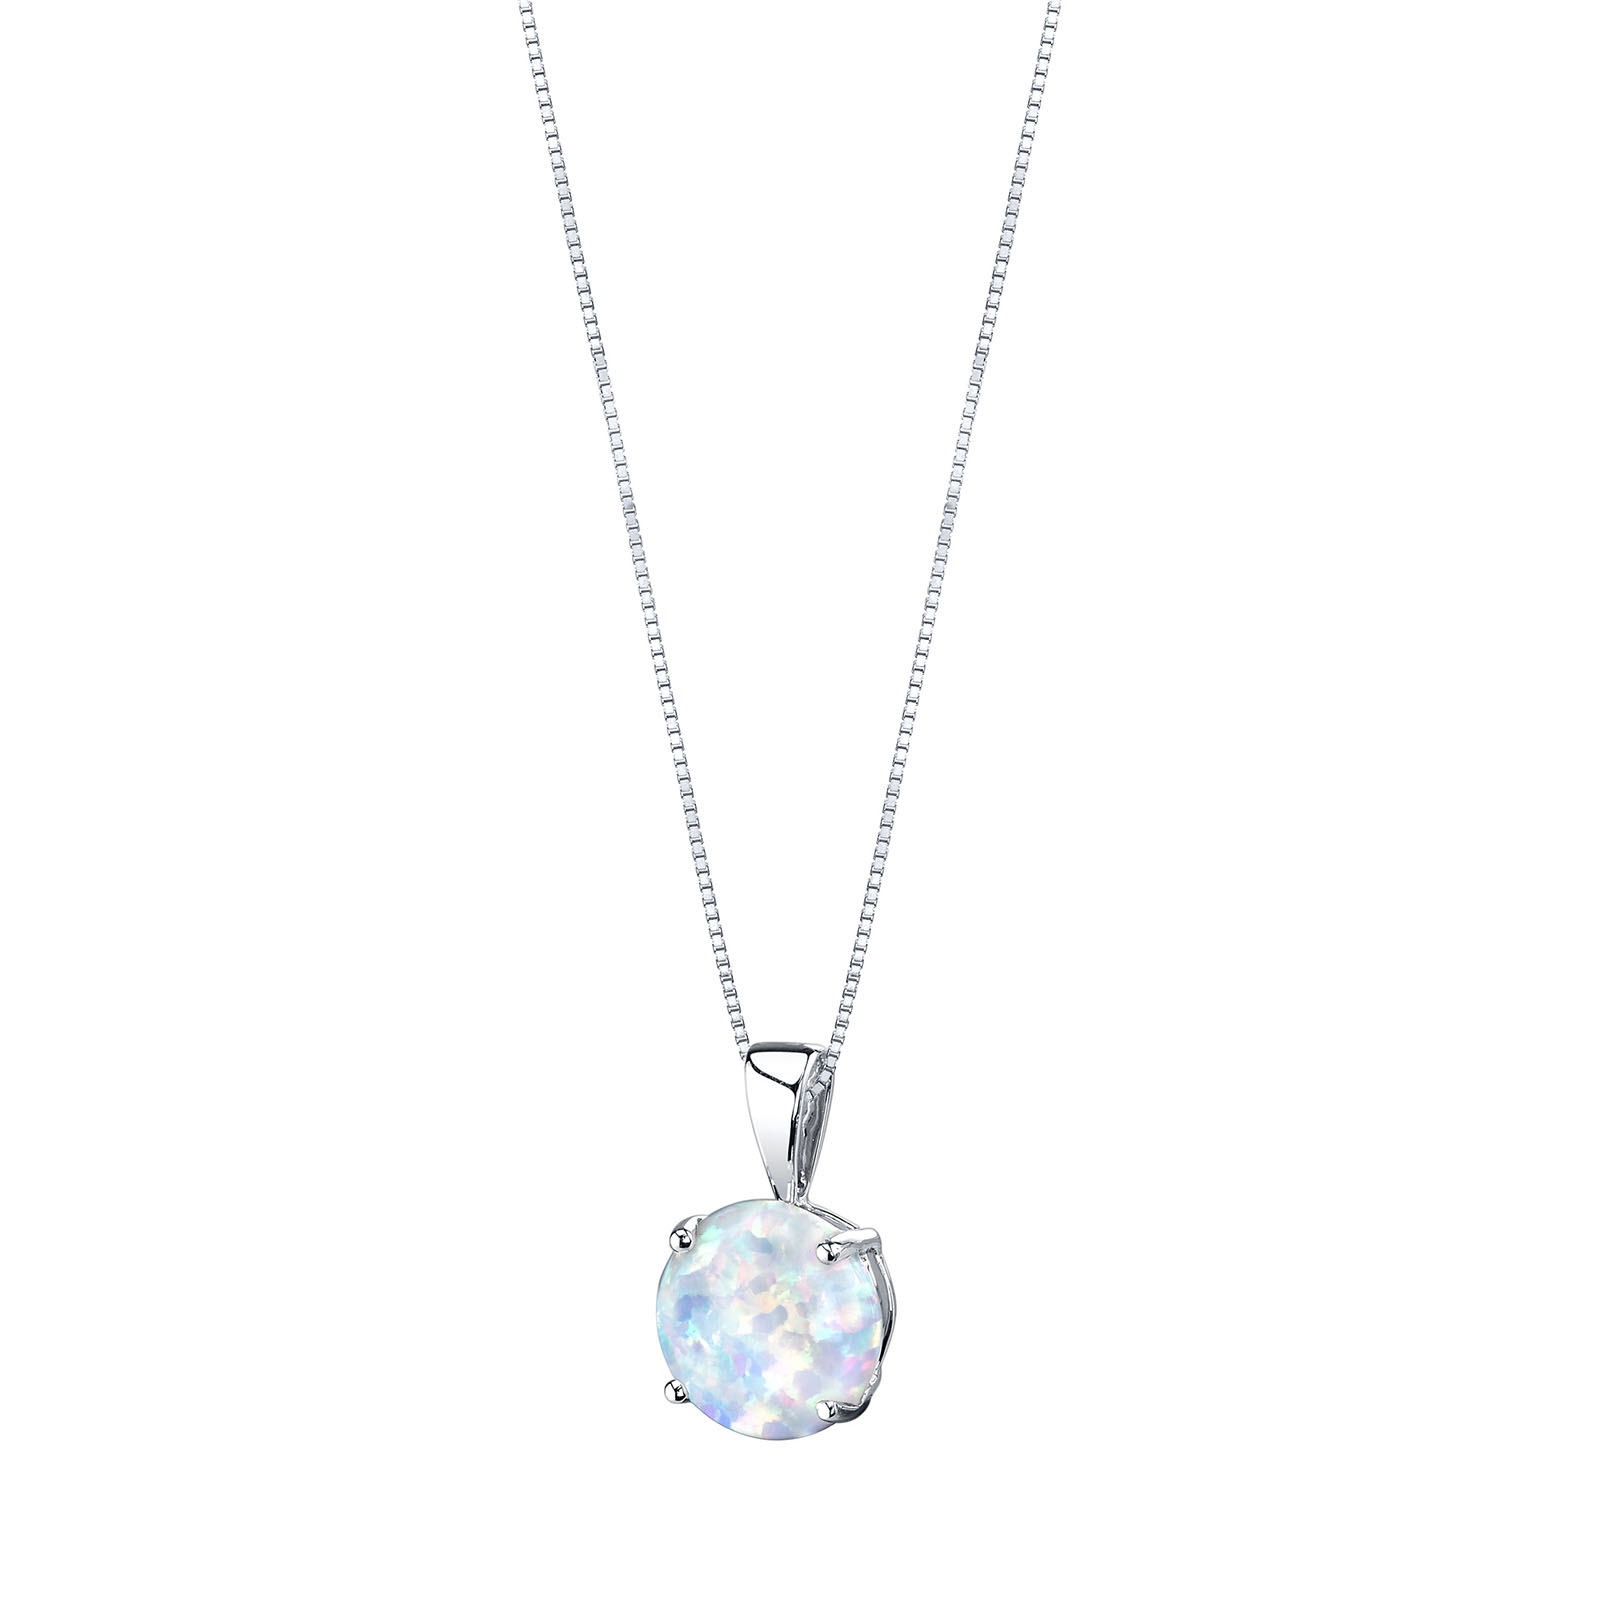 OPAL 9CT WHITE GOLD PENDANT NECKLACE WITH SILVER CHAIN